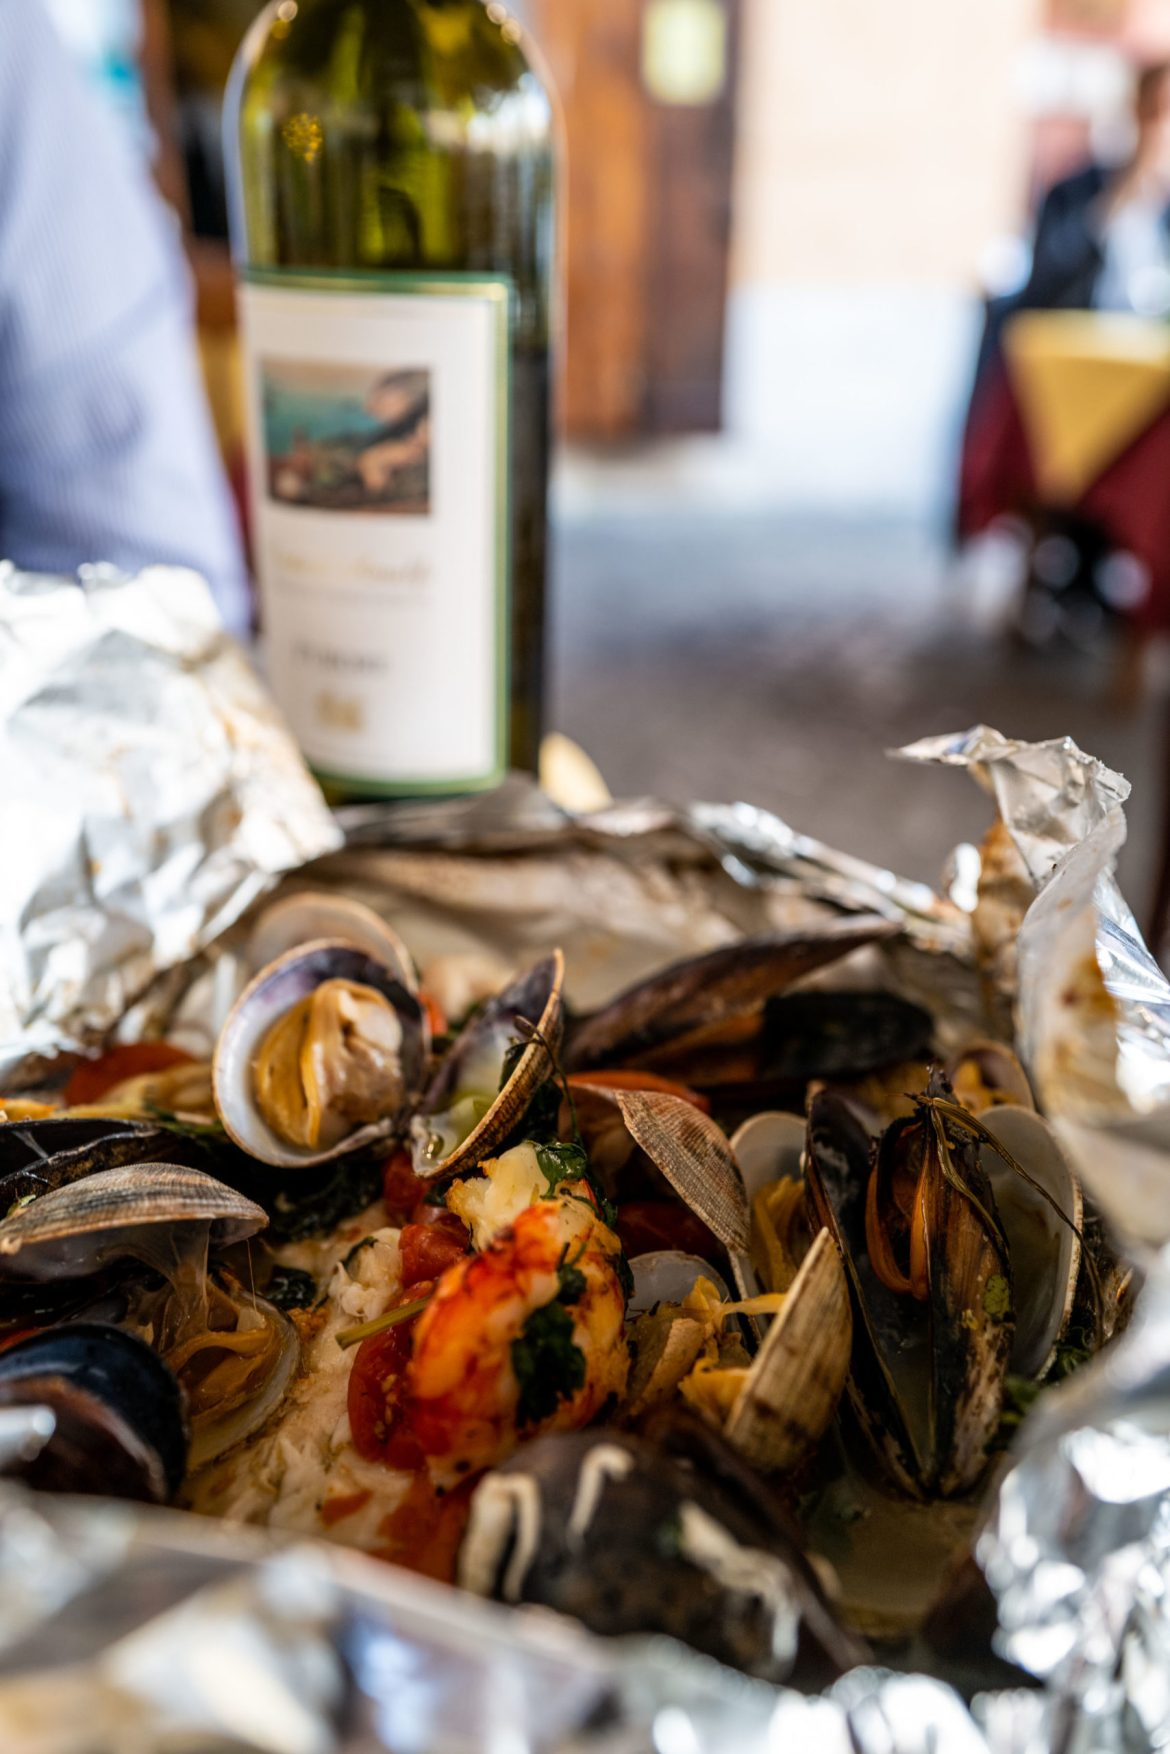 Find some of the best rustic seafood dishes at Trattoria da Teo, The Taste Edit #rome #seafood